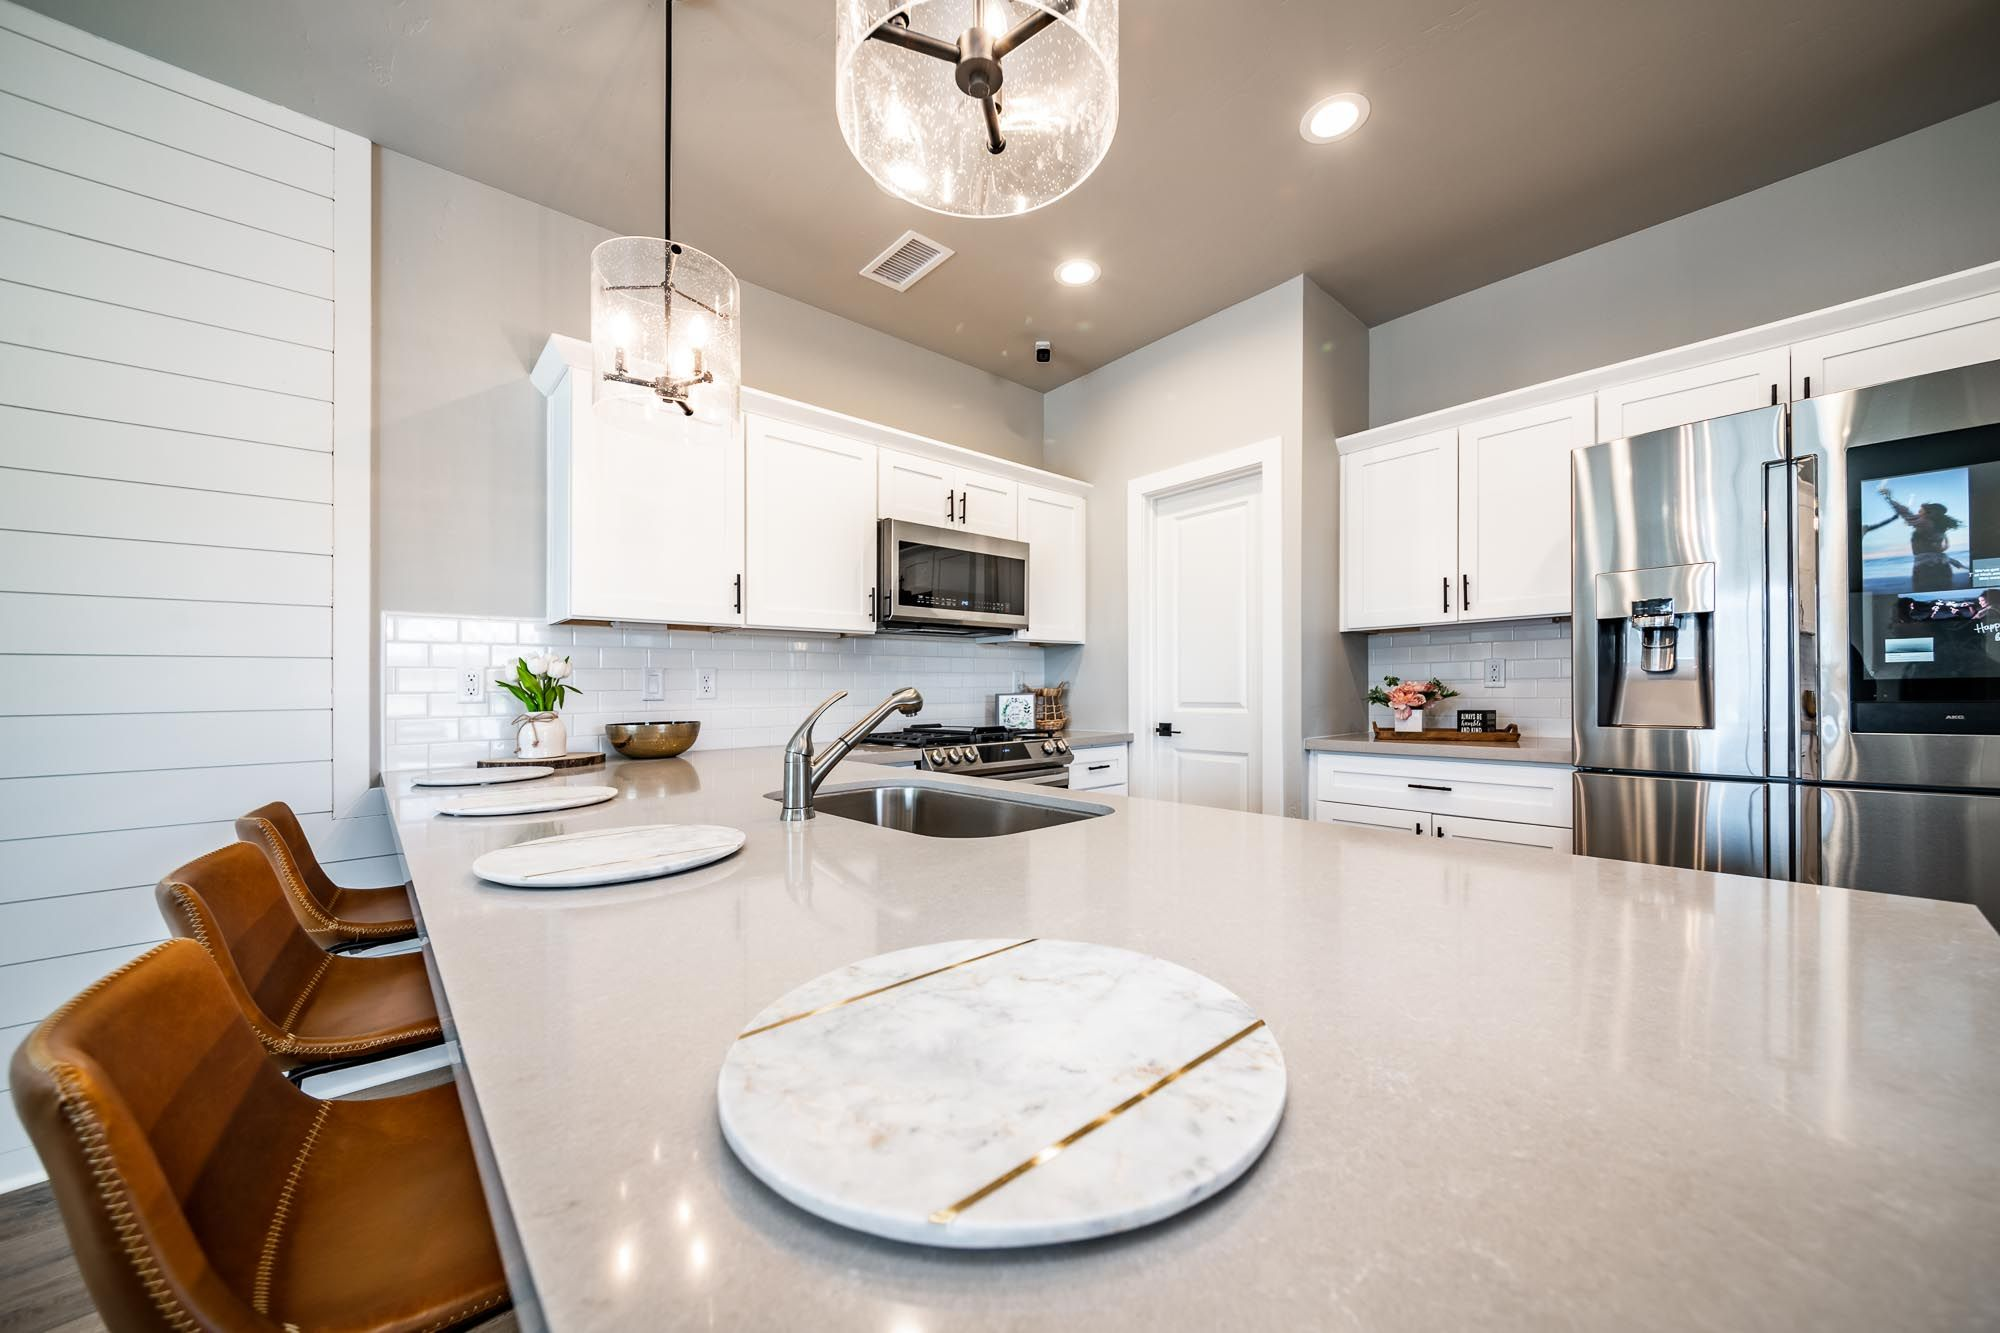 Kitchen featured in the Plan 3 By Solid Homes in Flagstaff, AZ